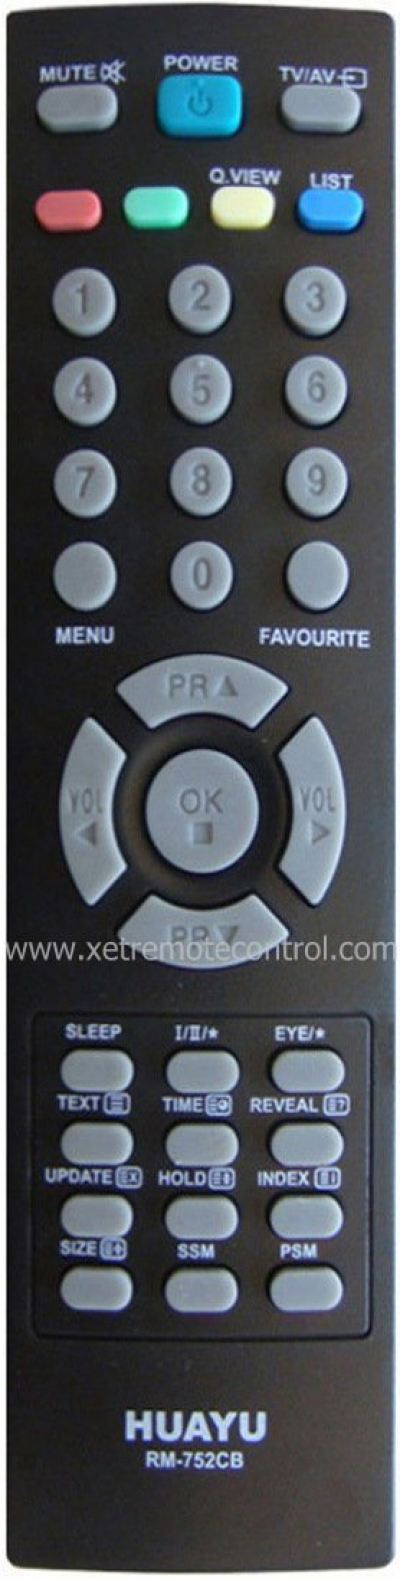 RM-752CB LG LCD/LED TV REMOTE CONTROL